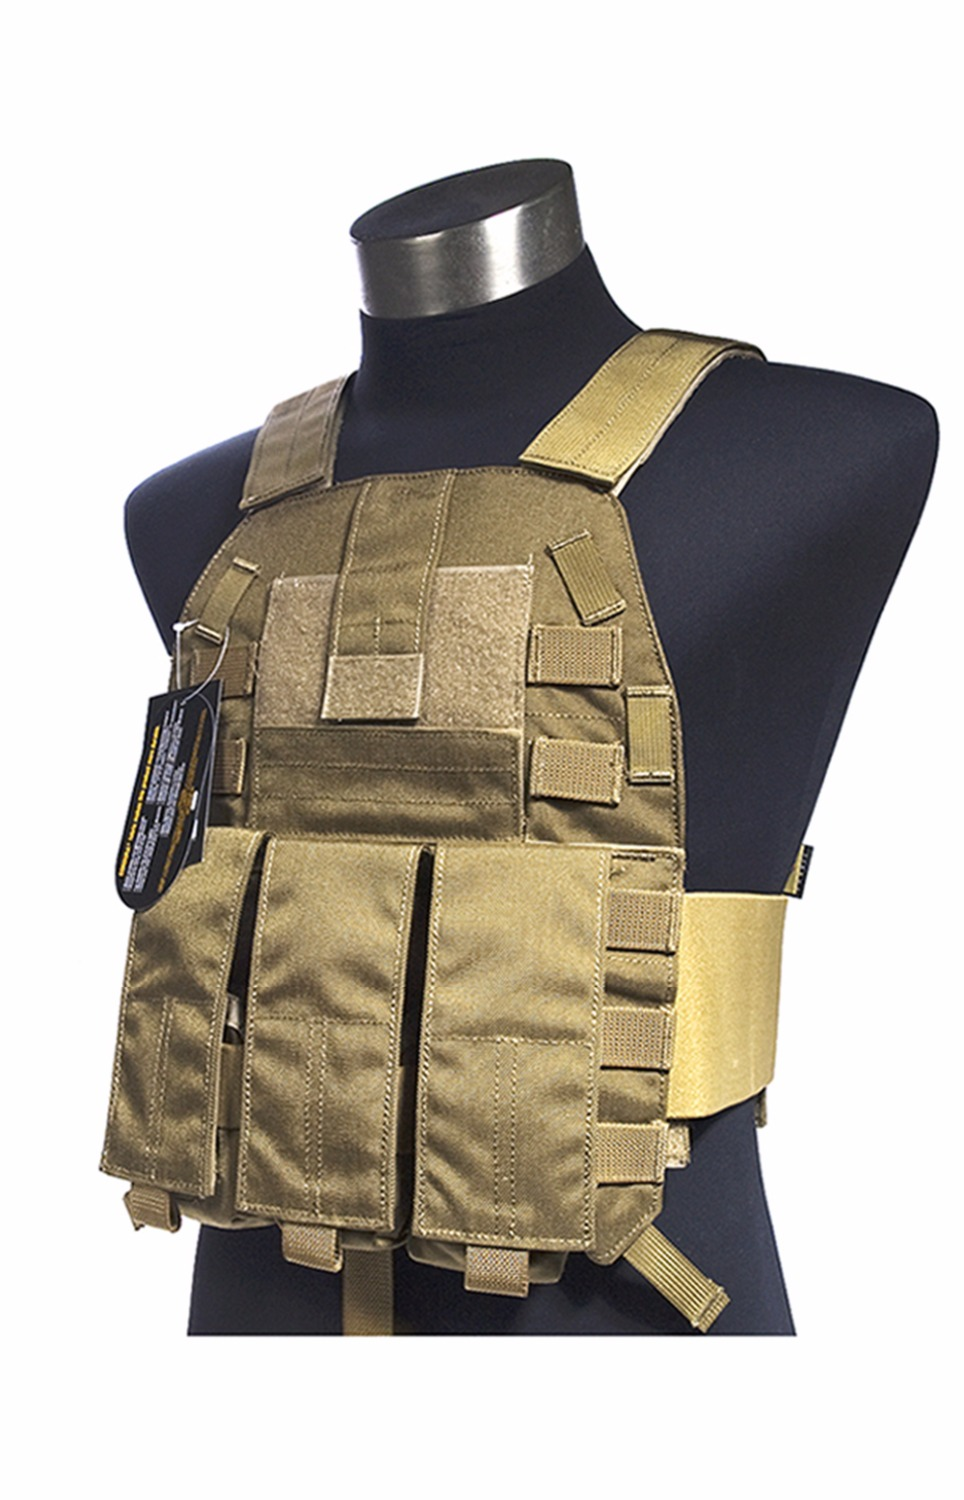 Mil Spec Military LT6094K Coyote Brown CB Plate Carrier Combat Molle Tactical Vest  Army Military Combat Vests & Gear Carrier 97 3102a 36 10s 604 circular mil spec recept mr li